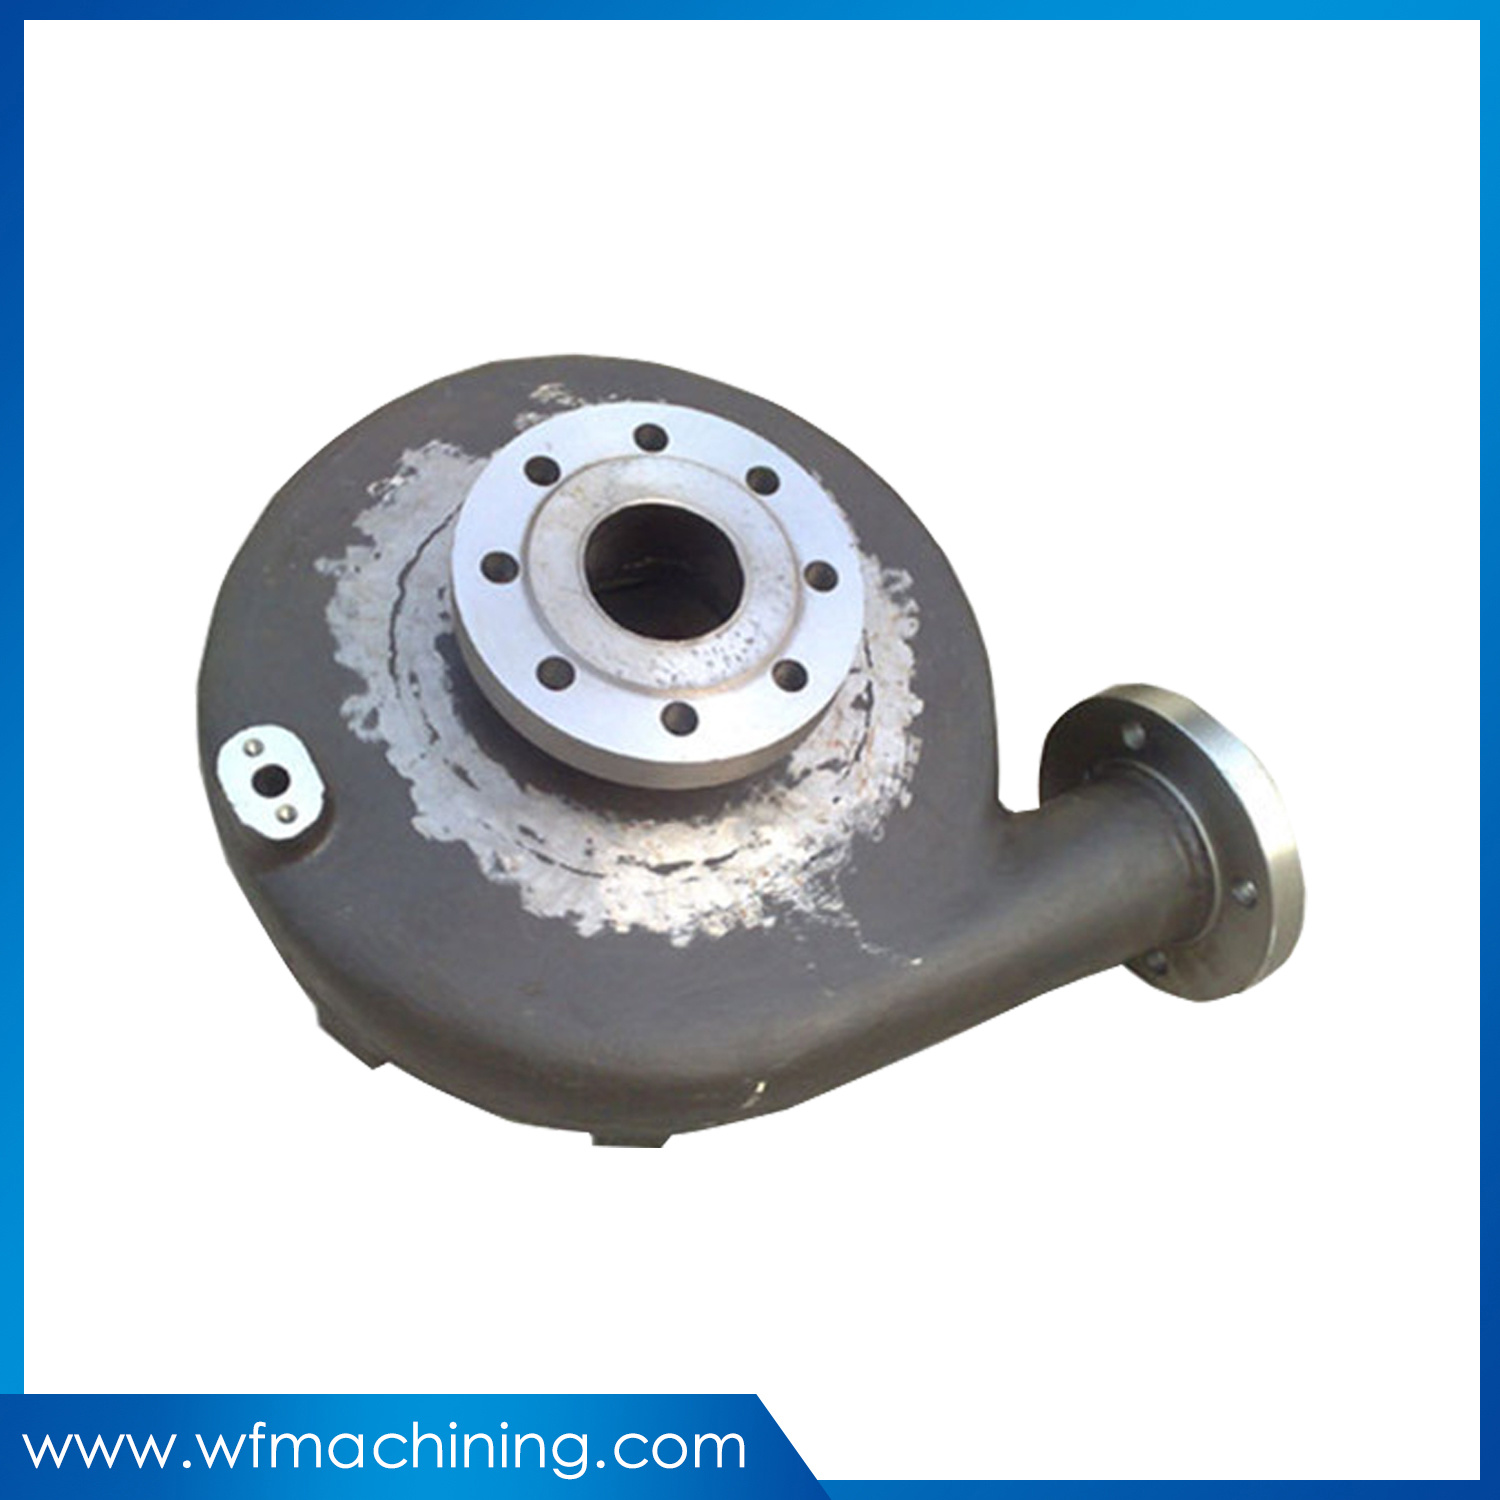 Precision Investment Casting/Lost Wax Casting Carbon Steel Valve Casting Parts for Control Valve Spool pictures & photos